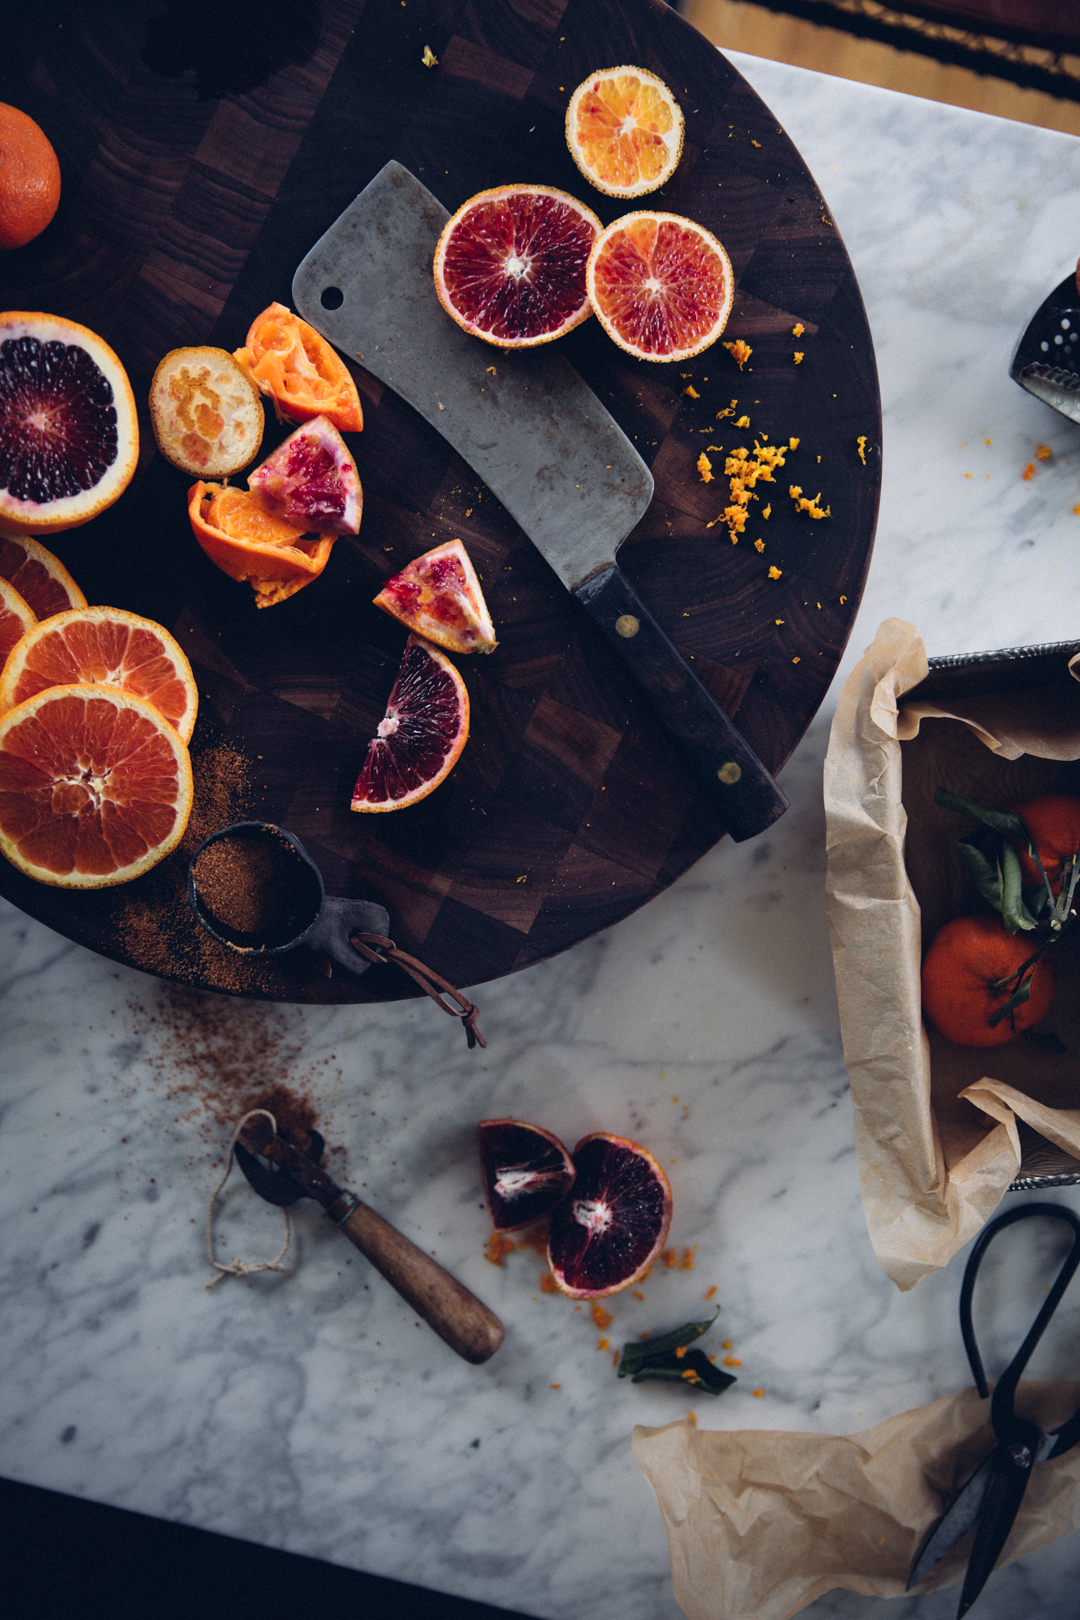 Blood oranges on cutting board.